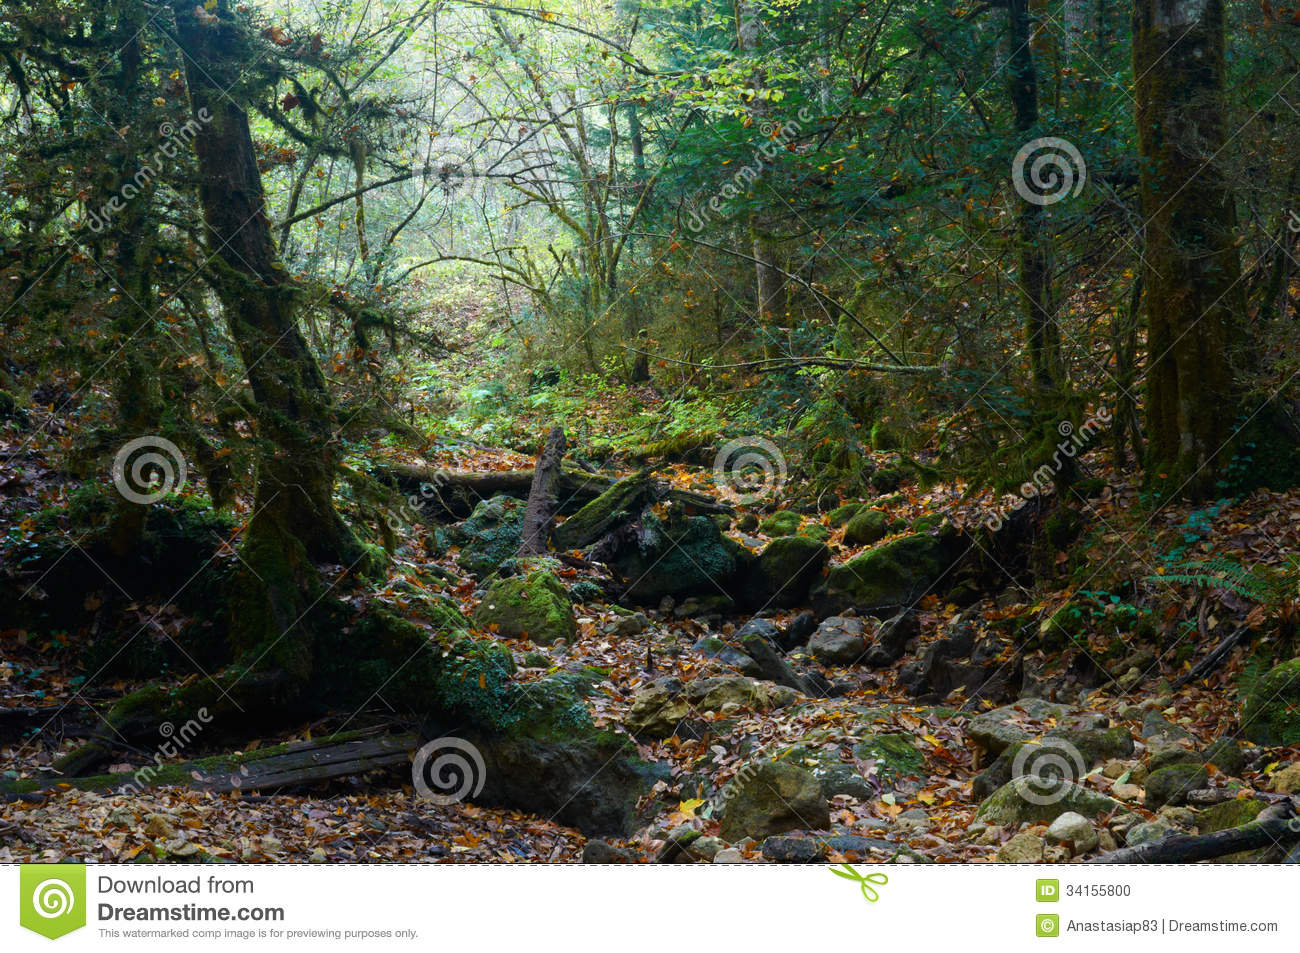 Spooky halloween forest with a fallen tree